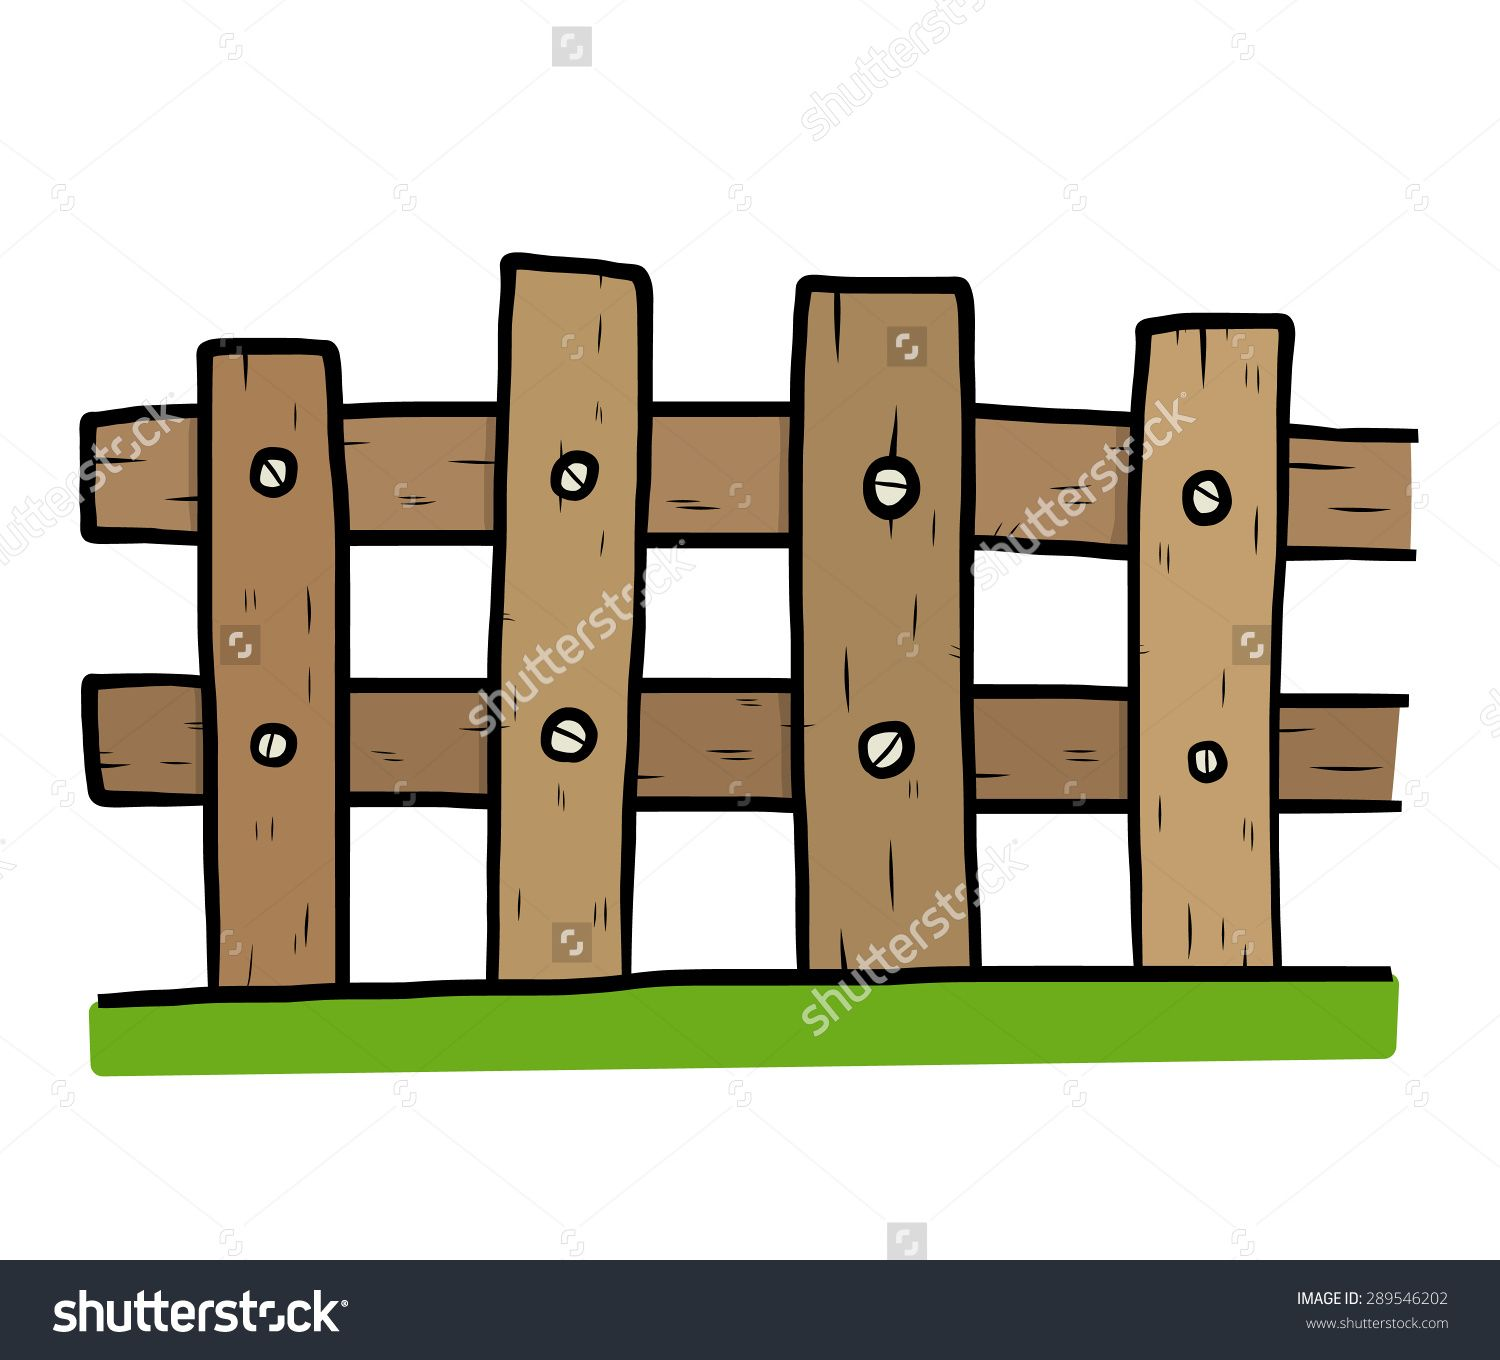 Wooden fence cartoon vector and illustration hand drawn style wooden fence cartoon vector and illustration hand drawn style baanklon Choice Image